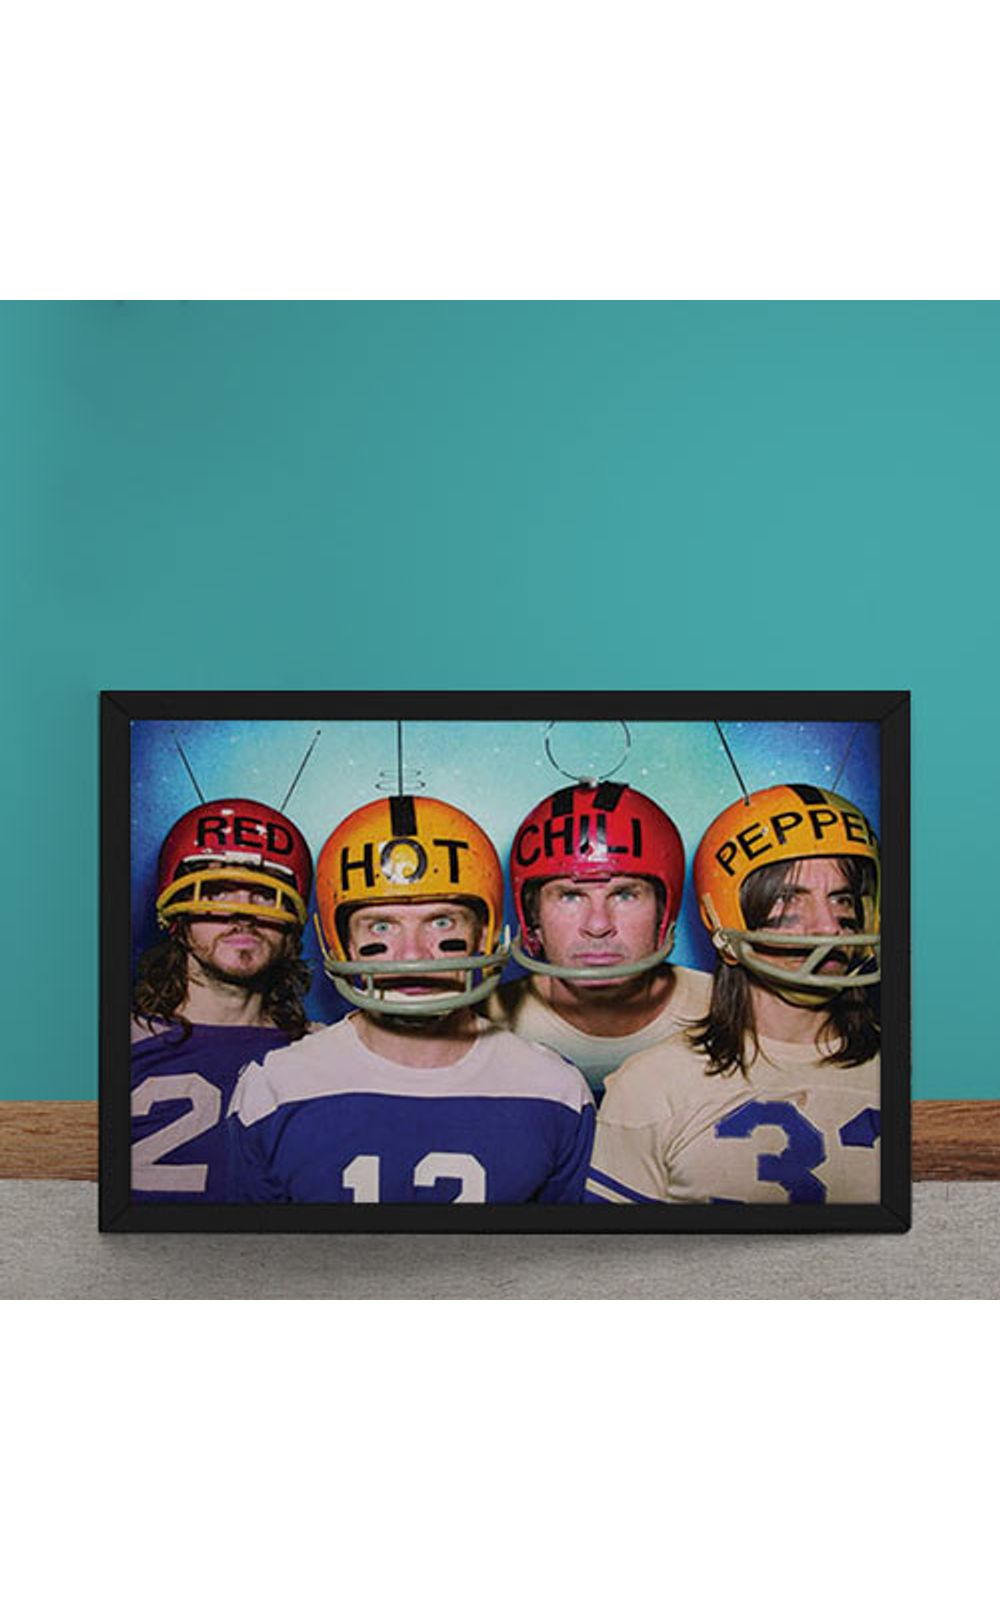 Foto 1 - Quadro Decorativo Red Hot Chili Peppers Futebol Americano